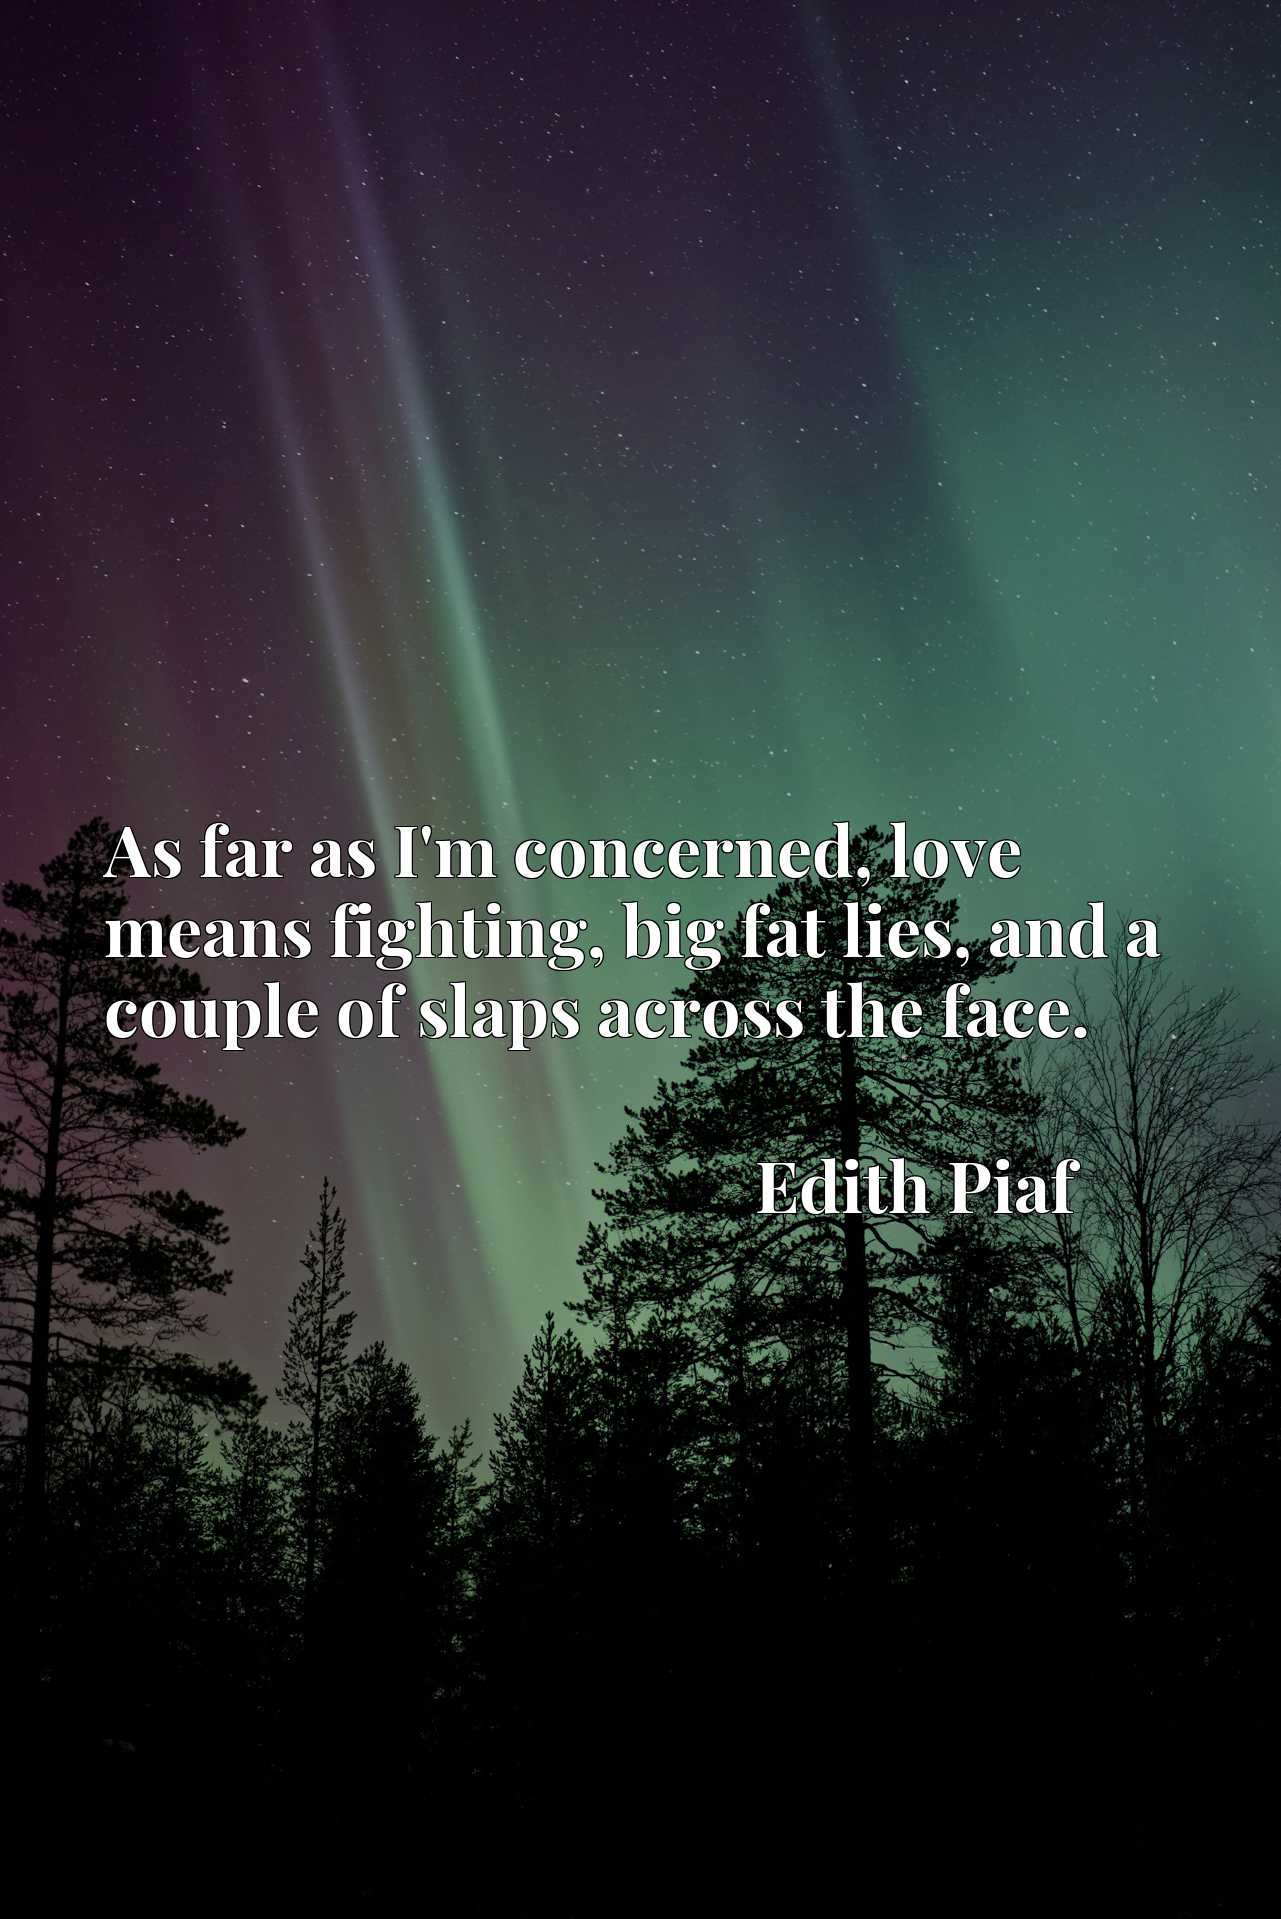 Quote Picture :As far as I'm concerned, love means fighting, big fat lies, and a couple of slaps across the face.